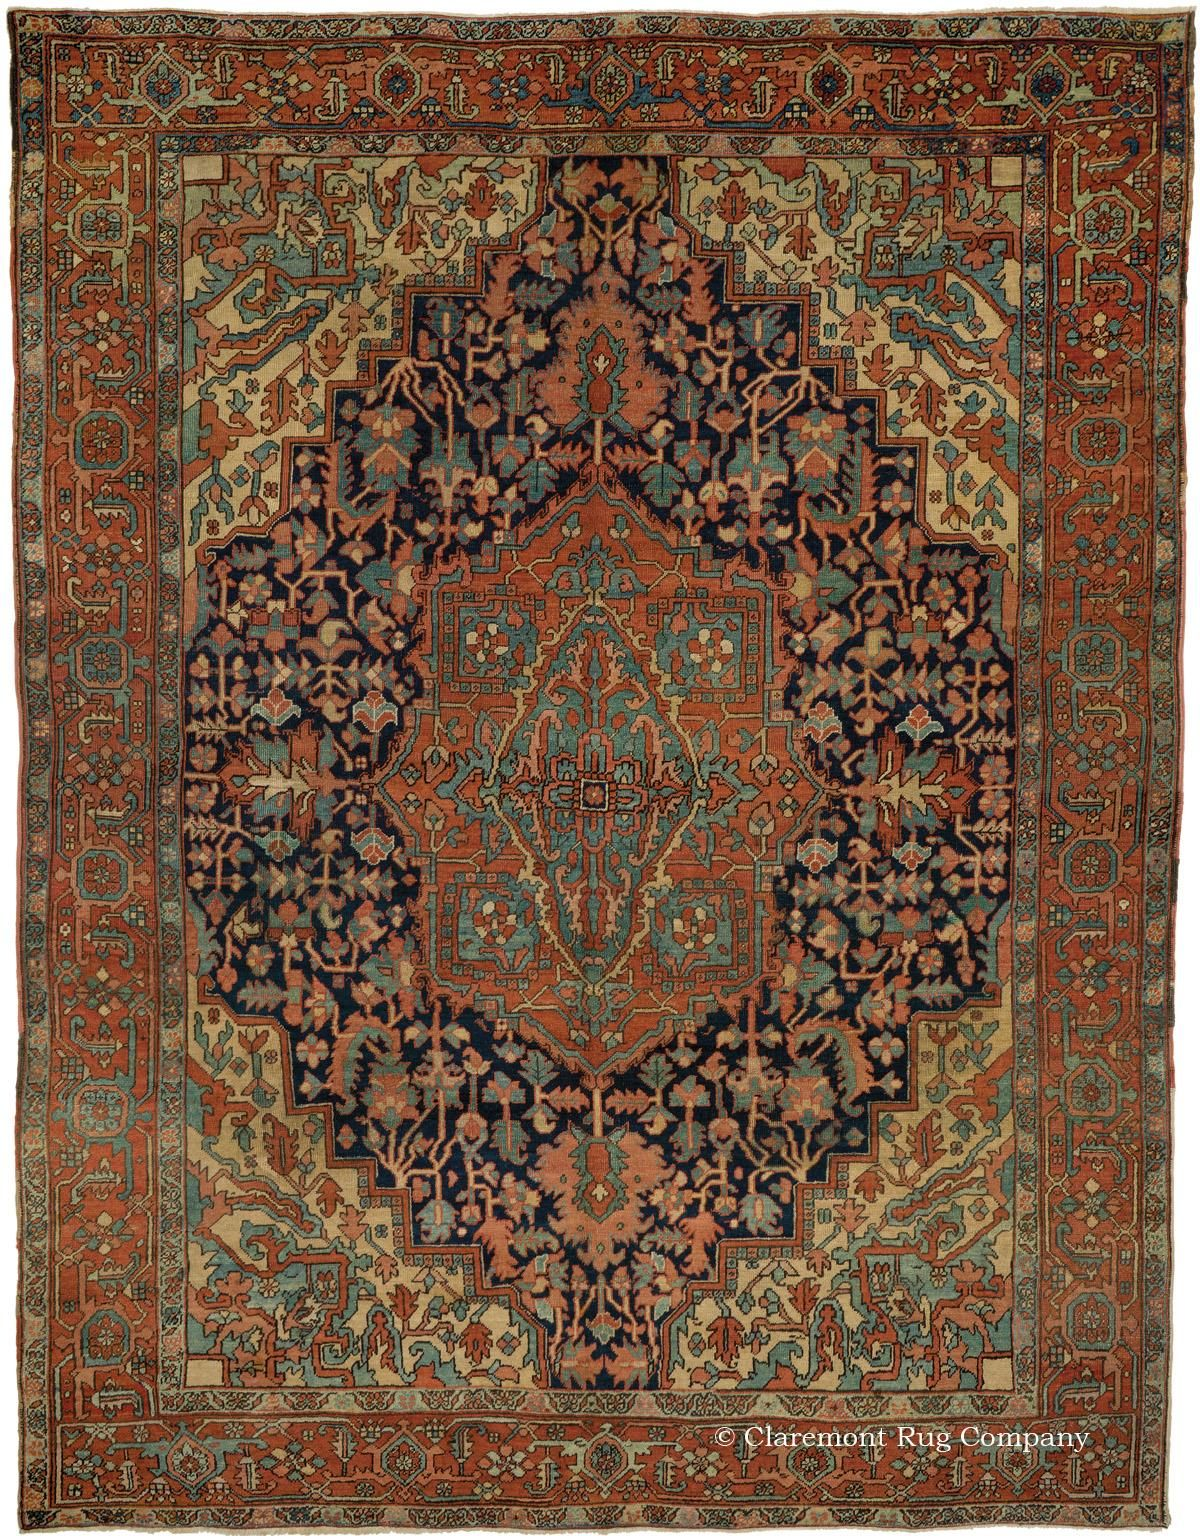 Heriz Northwest Persian 9ft 3in X 12ft 0in Circa 1910 Persian Rug Designs Antique Persian Carpet Claremont Rug Company